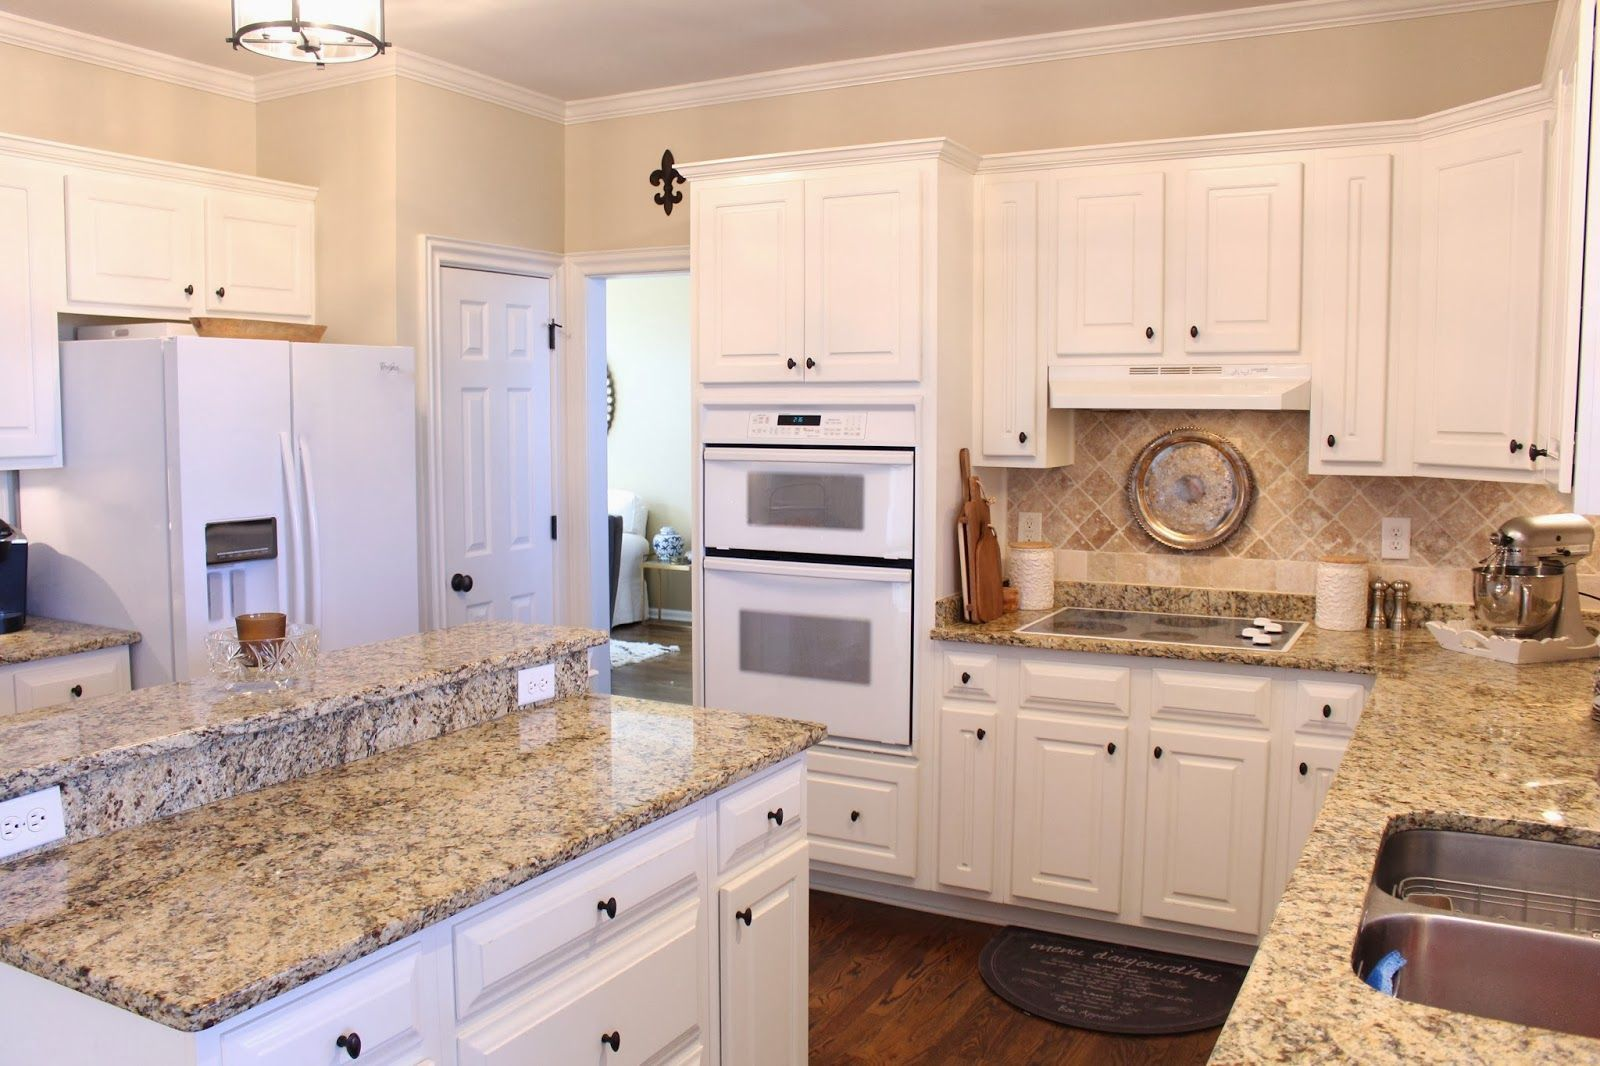 common granite countertops 2021 in 2020 beige kitchen on home office paint colors 2021 id=18556